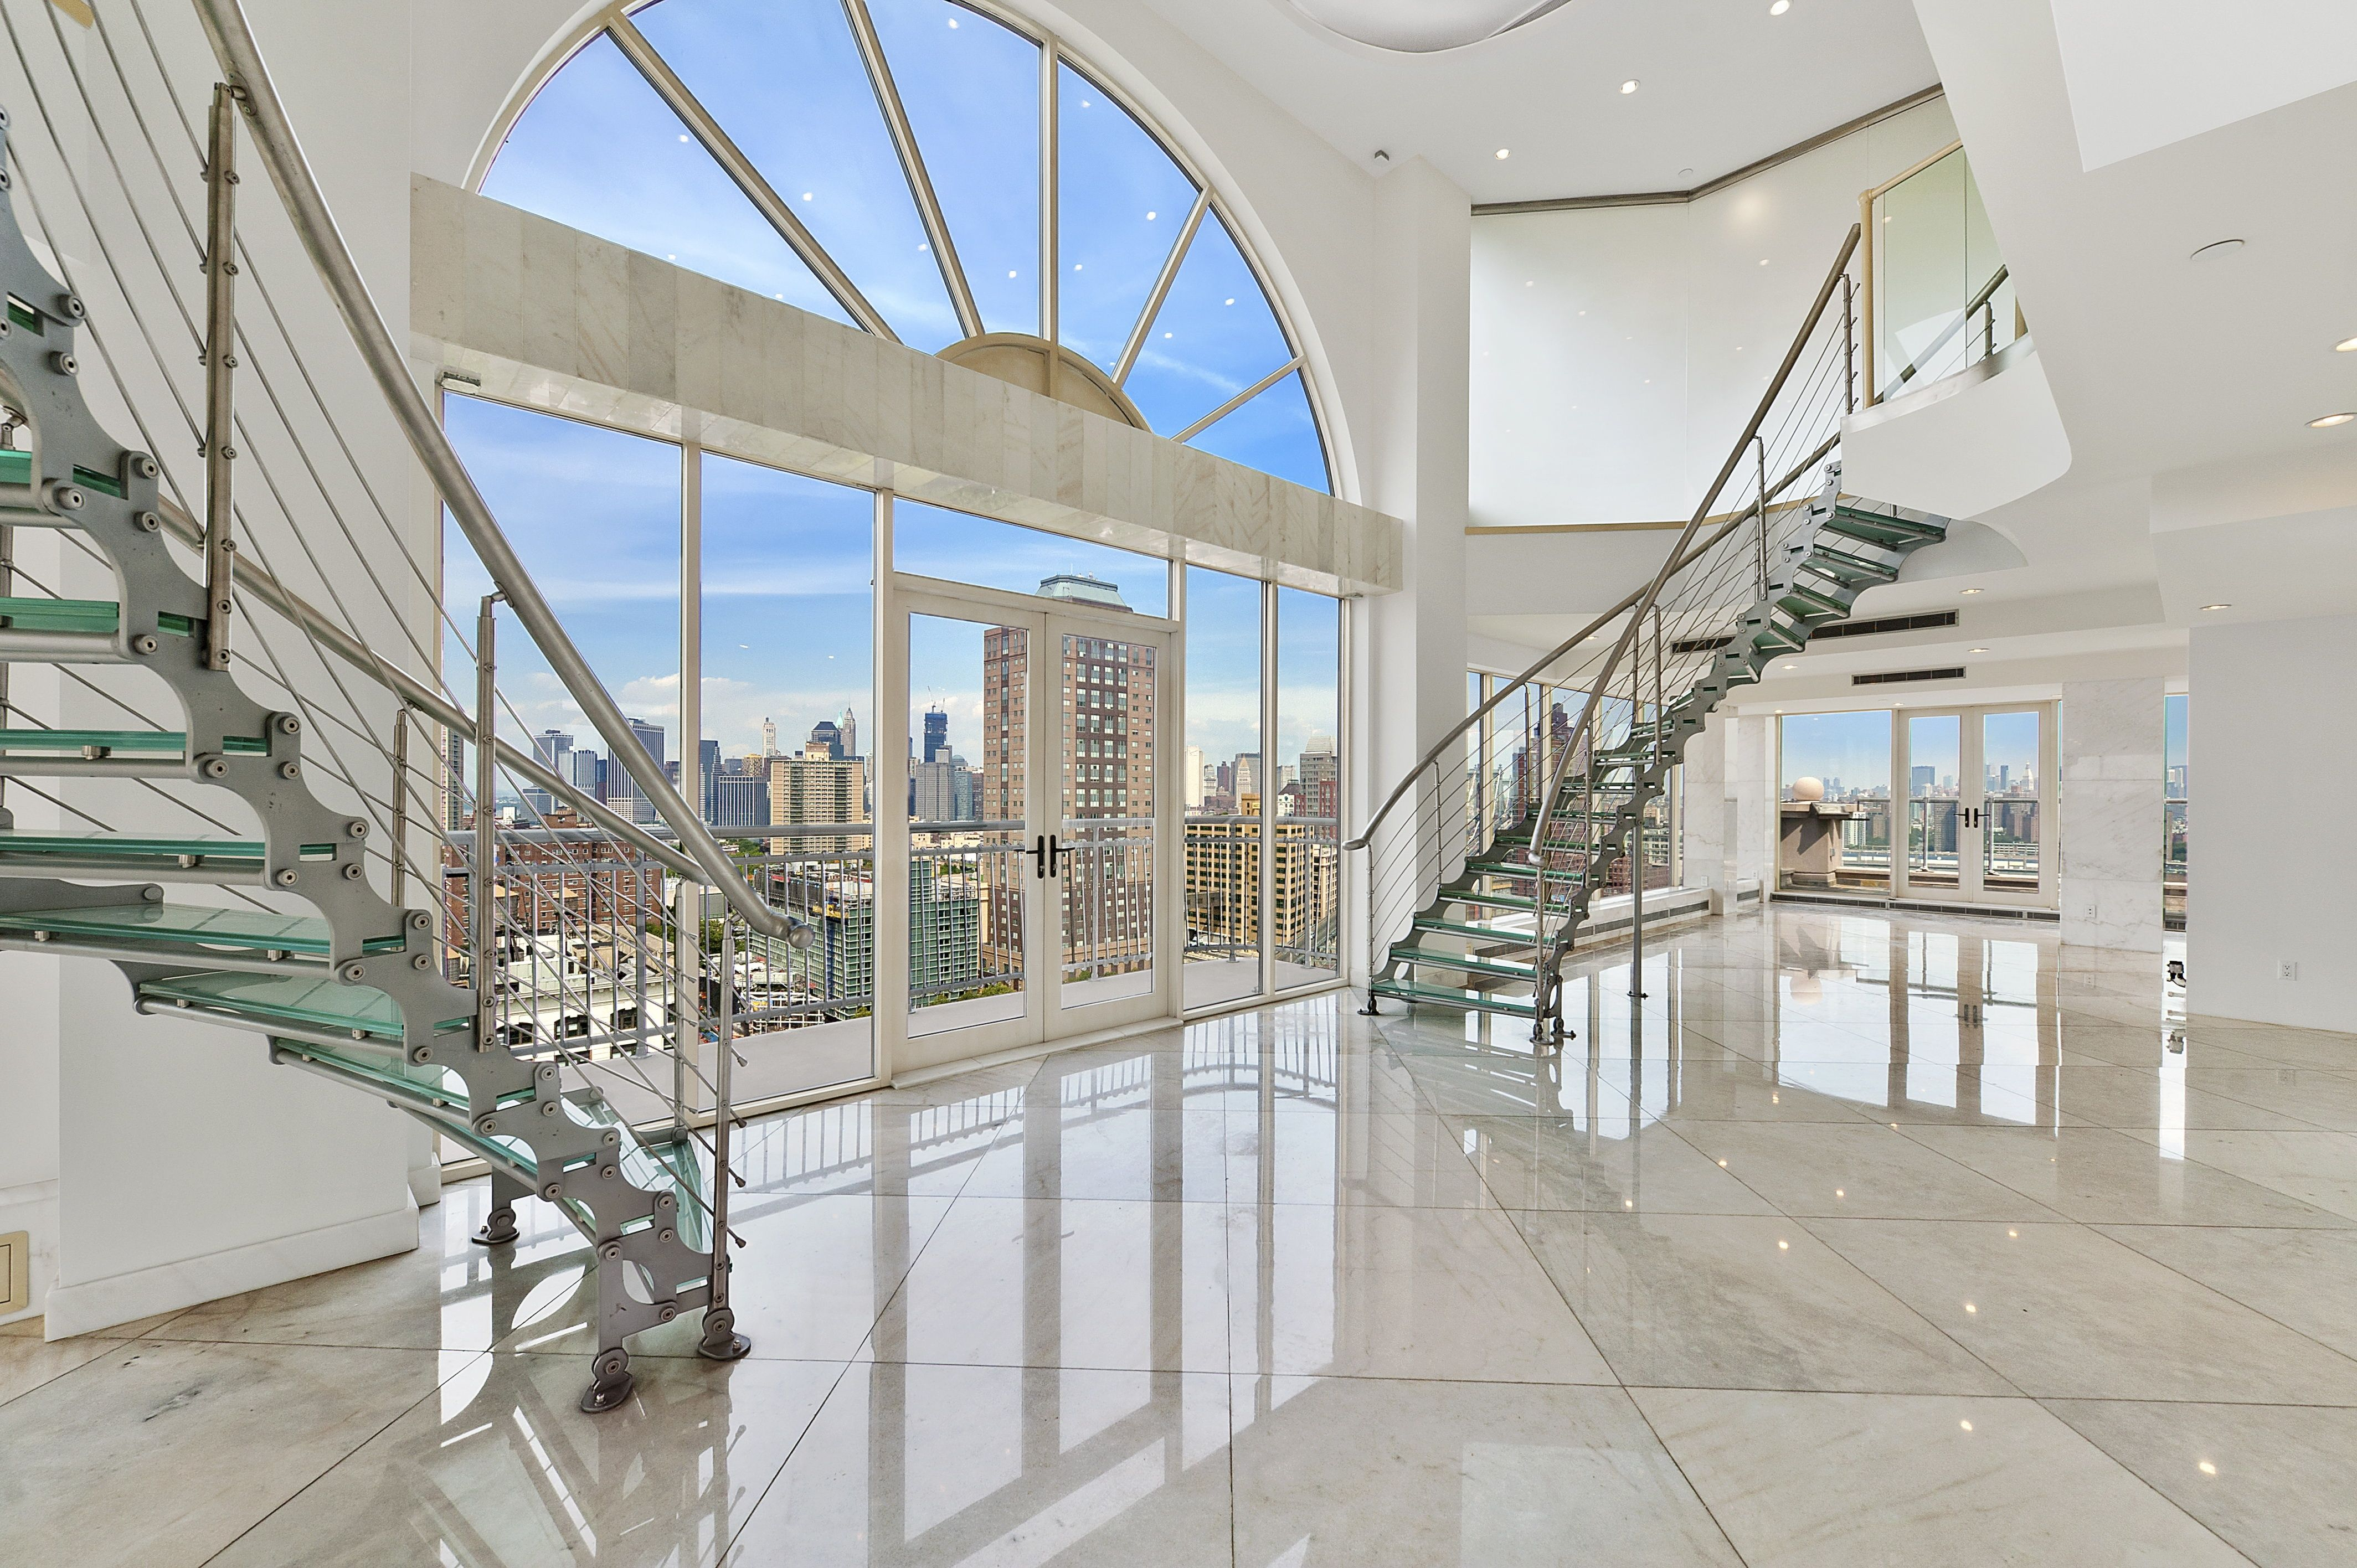 Downtown Brooklyn Glass Duplex Penthouse Stunner 5 BR For Sale Dumbo Apartment Sales 189 Bridge Street In NYC